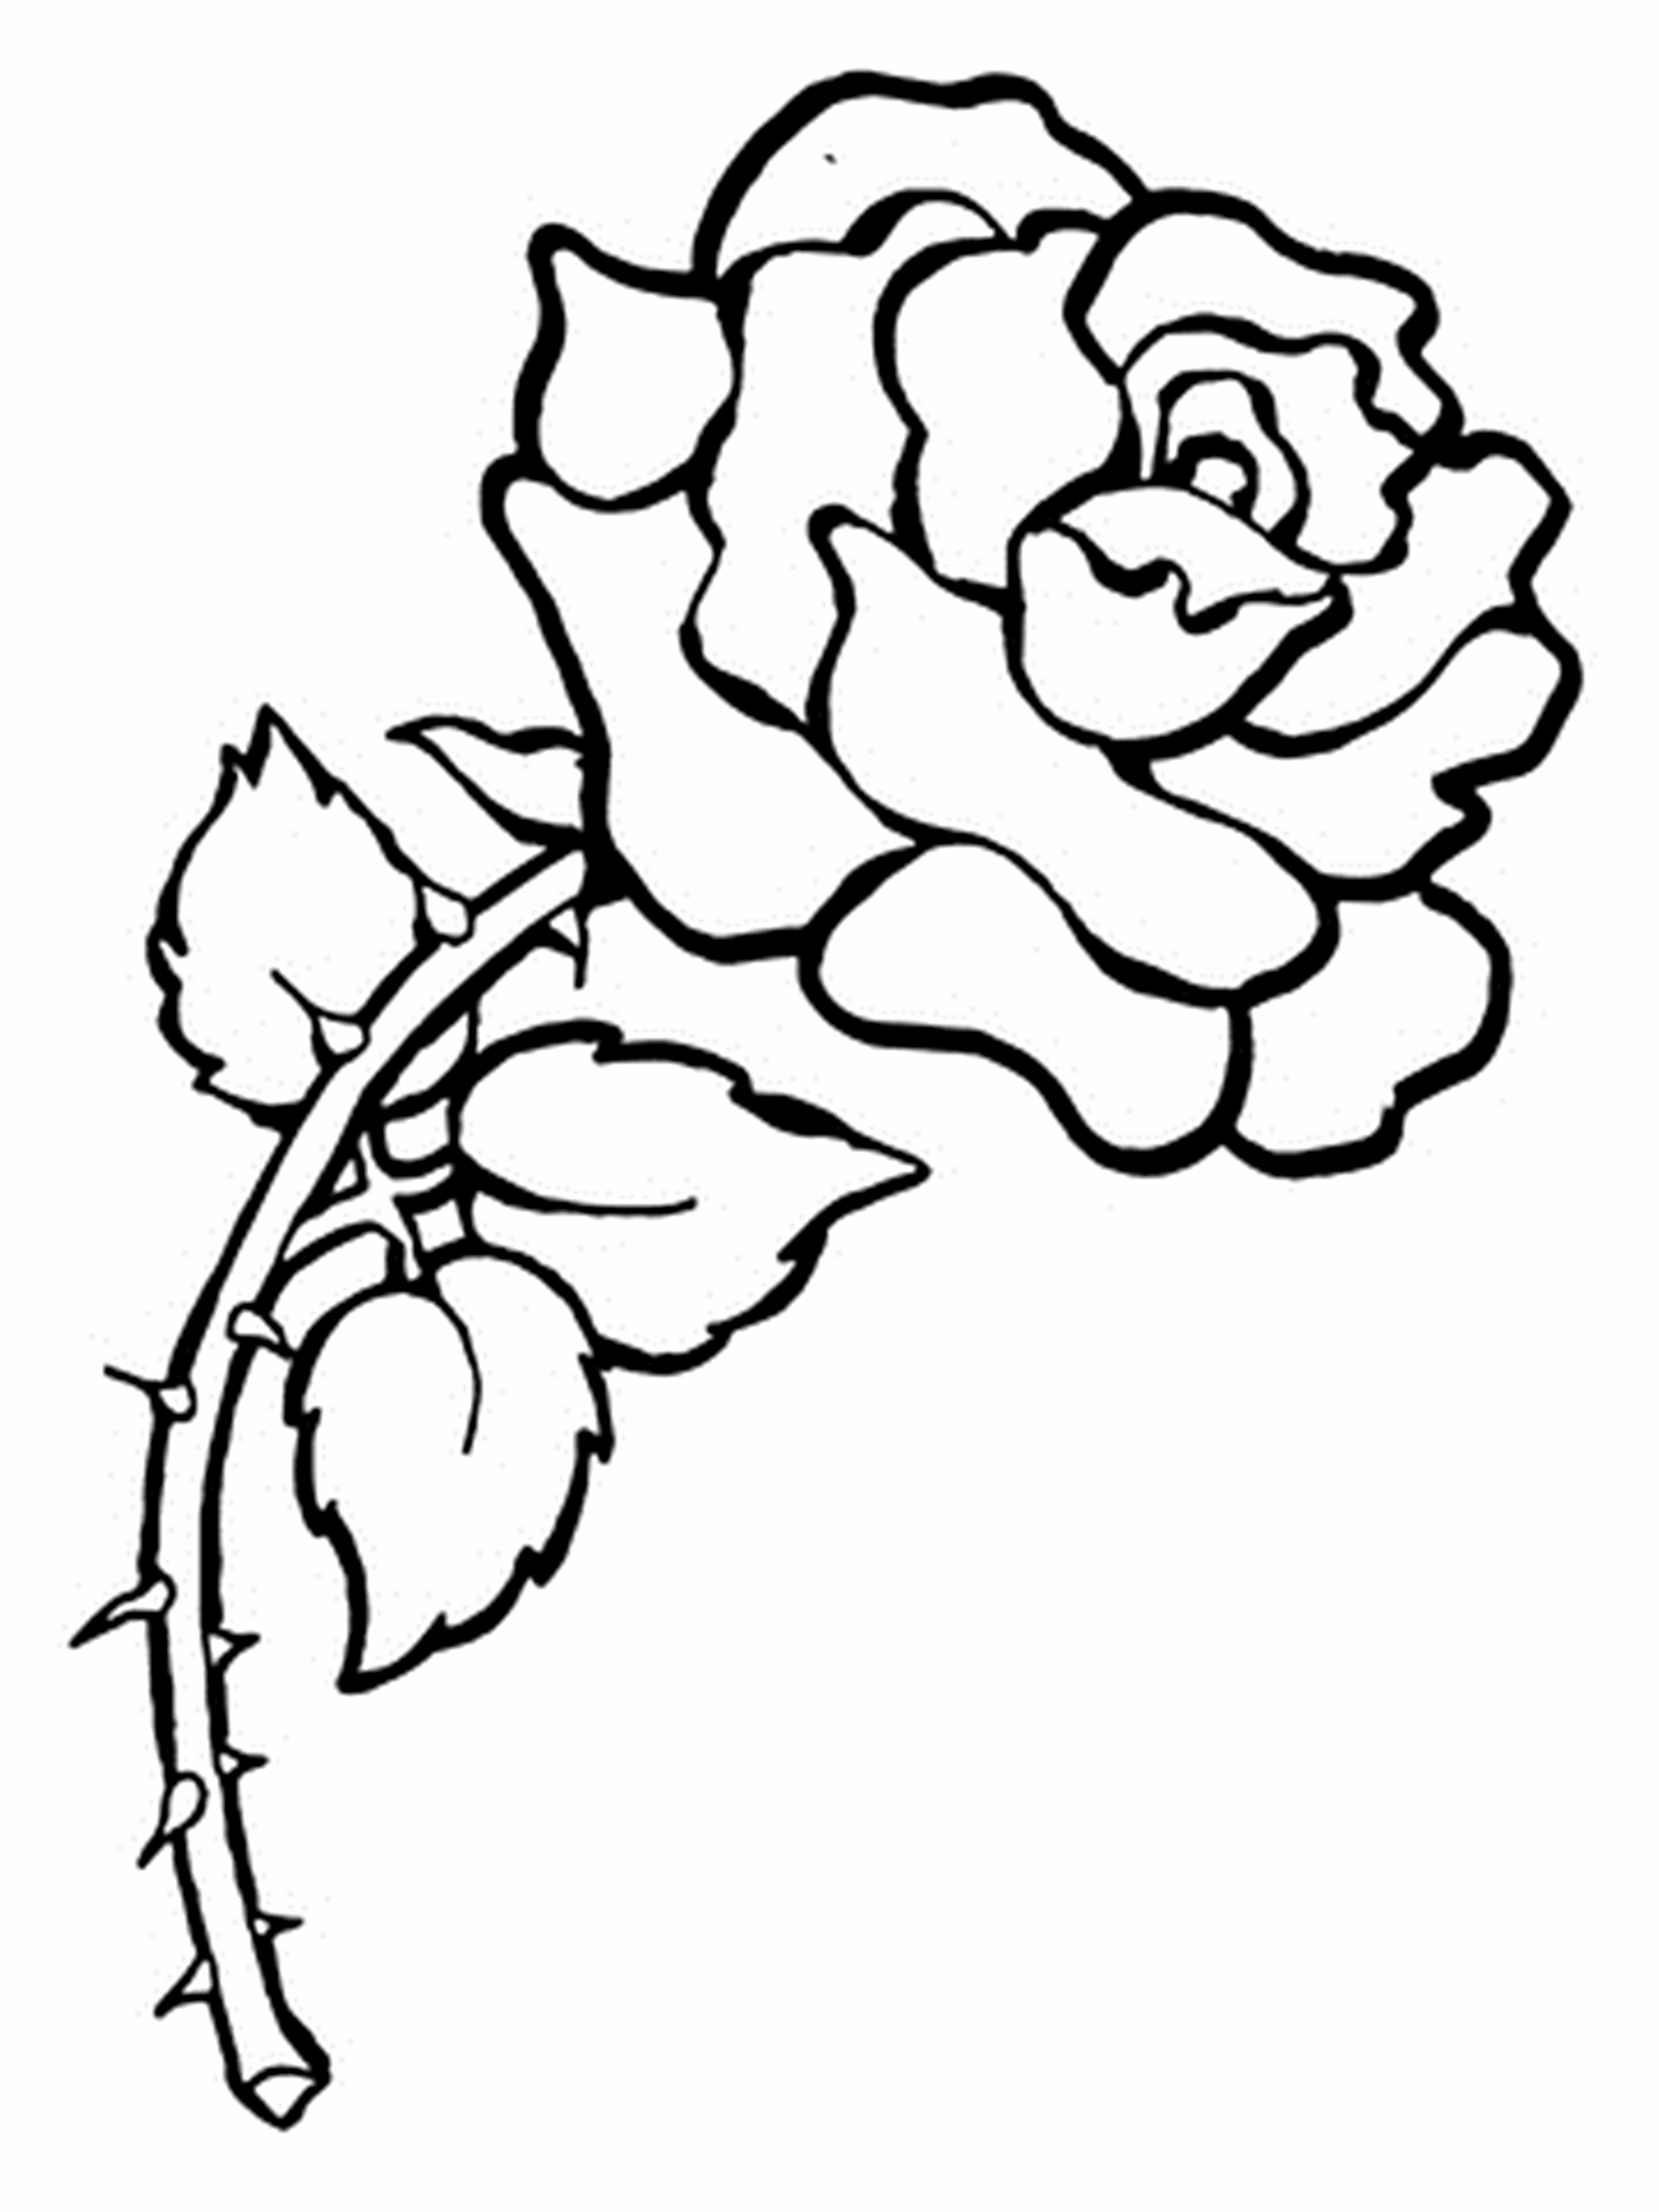 flower coloring pages for kids free printable flower coloring pages for kids best flower for coloring pages kids